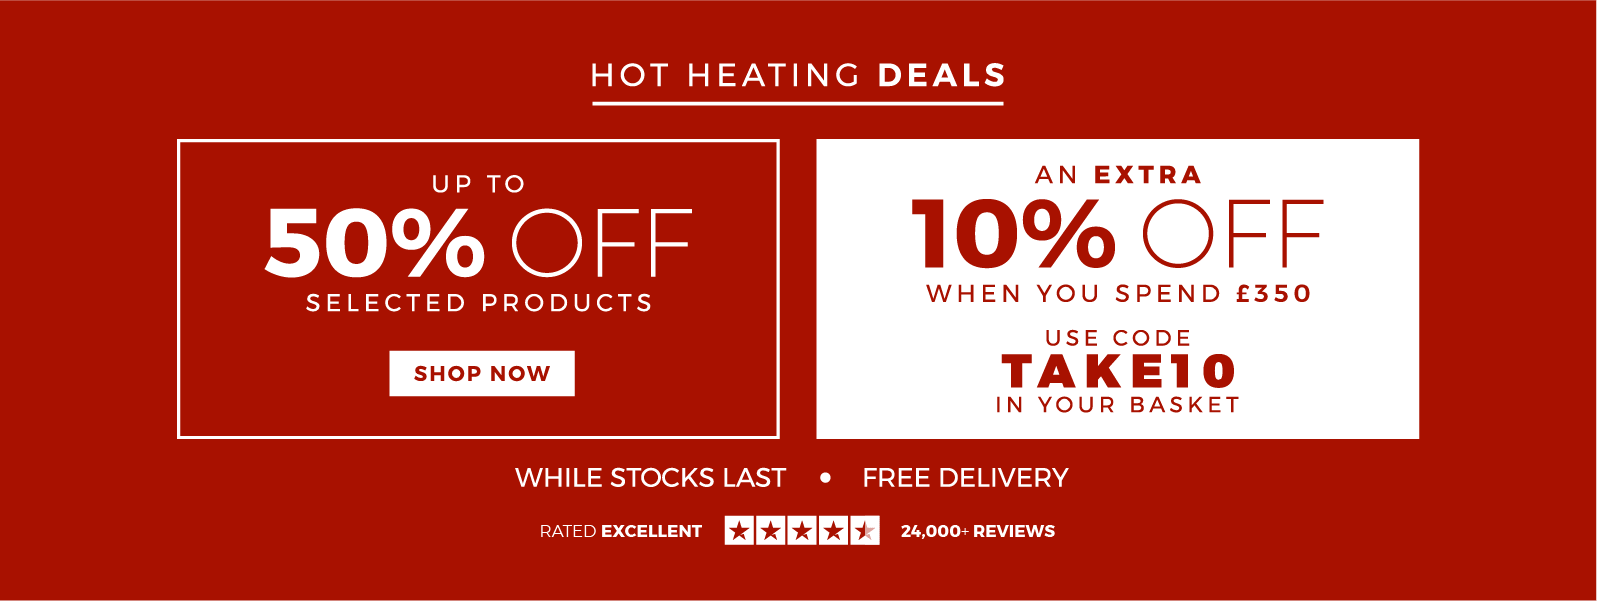 HOT HEATING DEALS | GET AN EXTRA 10% OFF WHEN YOU SPEND £350 – USE TAKE10 @ CHECKOUT